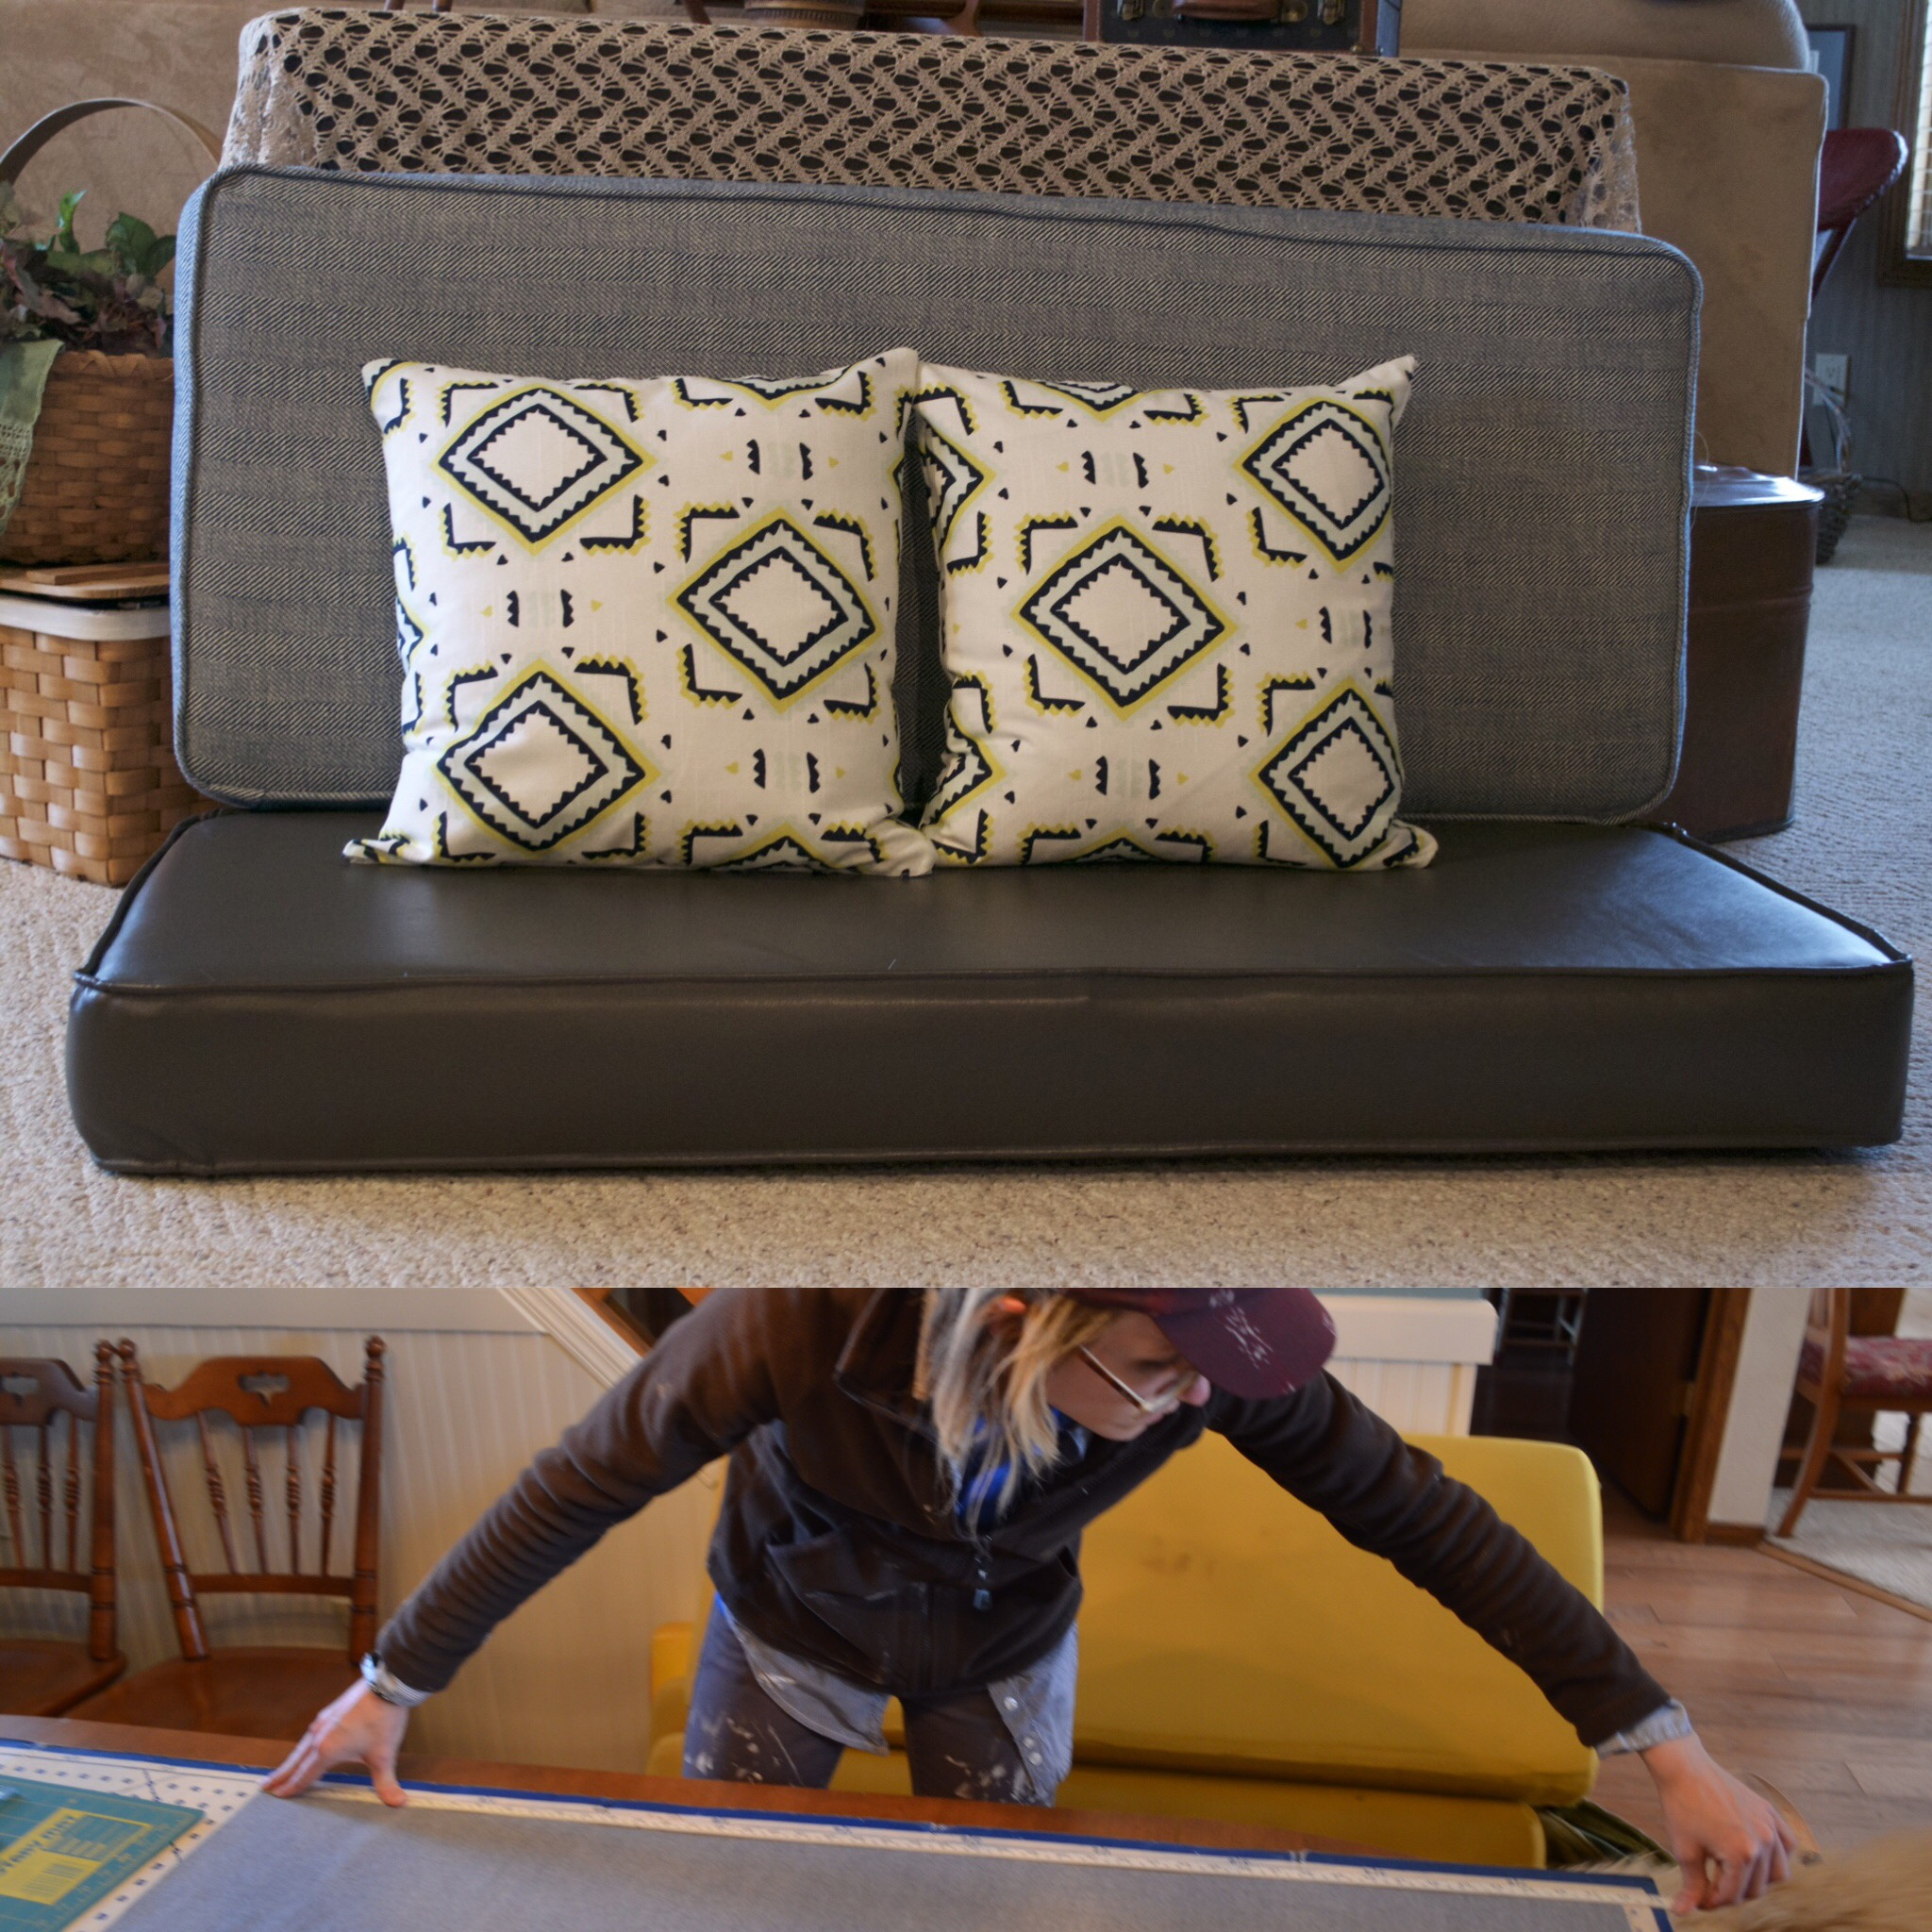 Reupholstering our bench seat cushions =no joke. But after five long weekends, we finally did it.